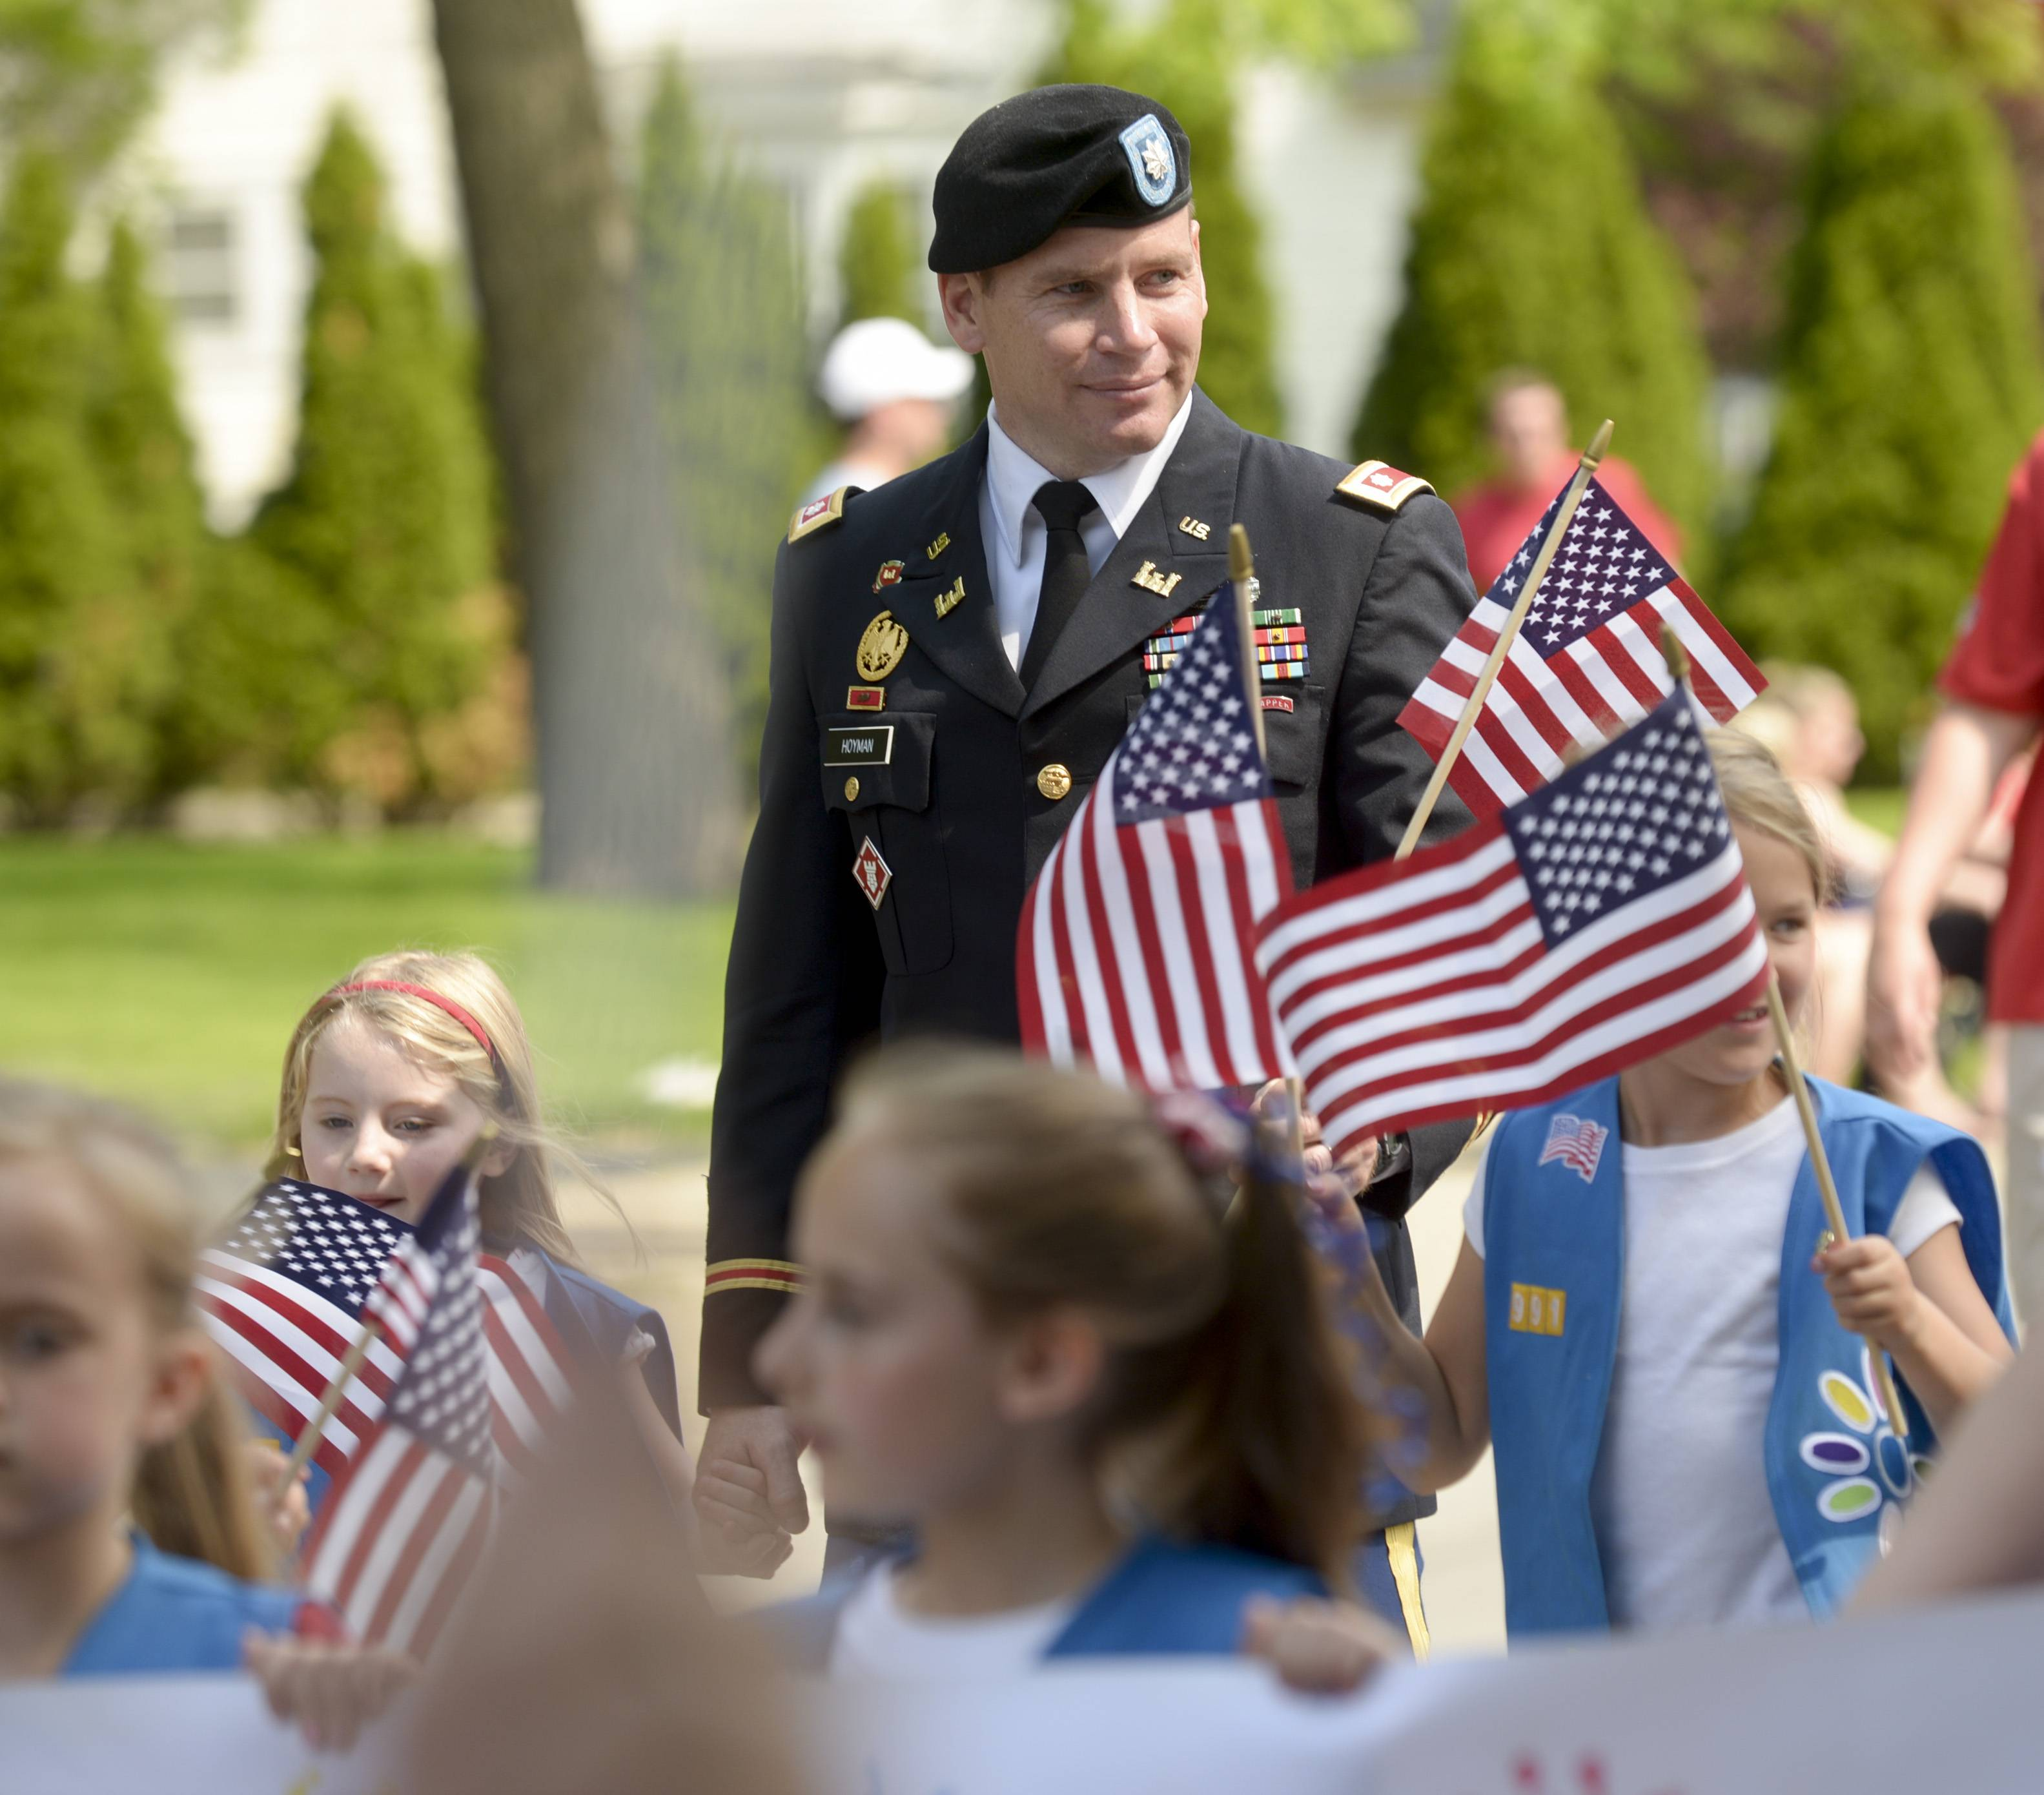 Army Lieutenant Colonel Jim Hoyman of Wheaton marches in the Wheaton Memorial Day parade with his daughter Paige's Daisy Troop from Washington School.